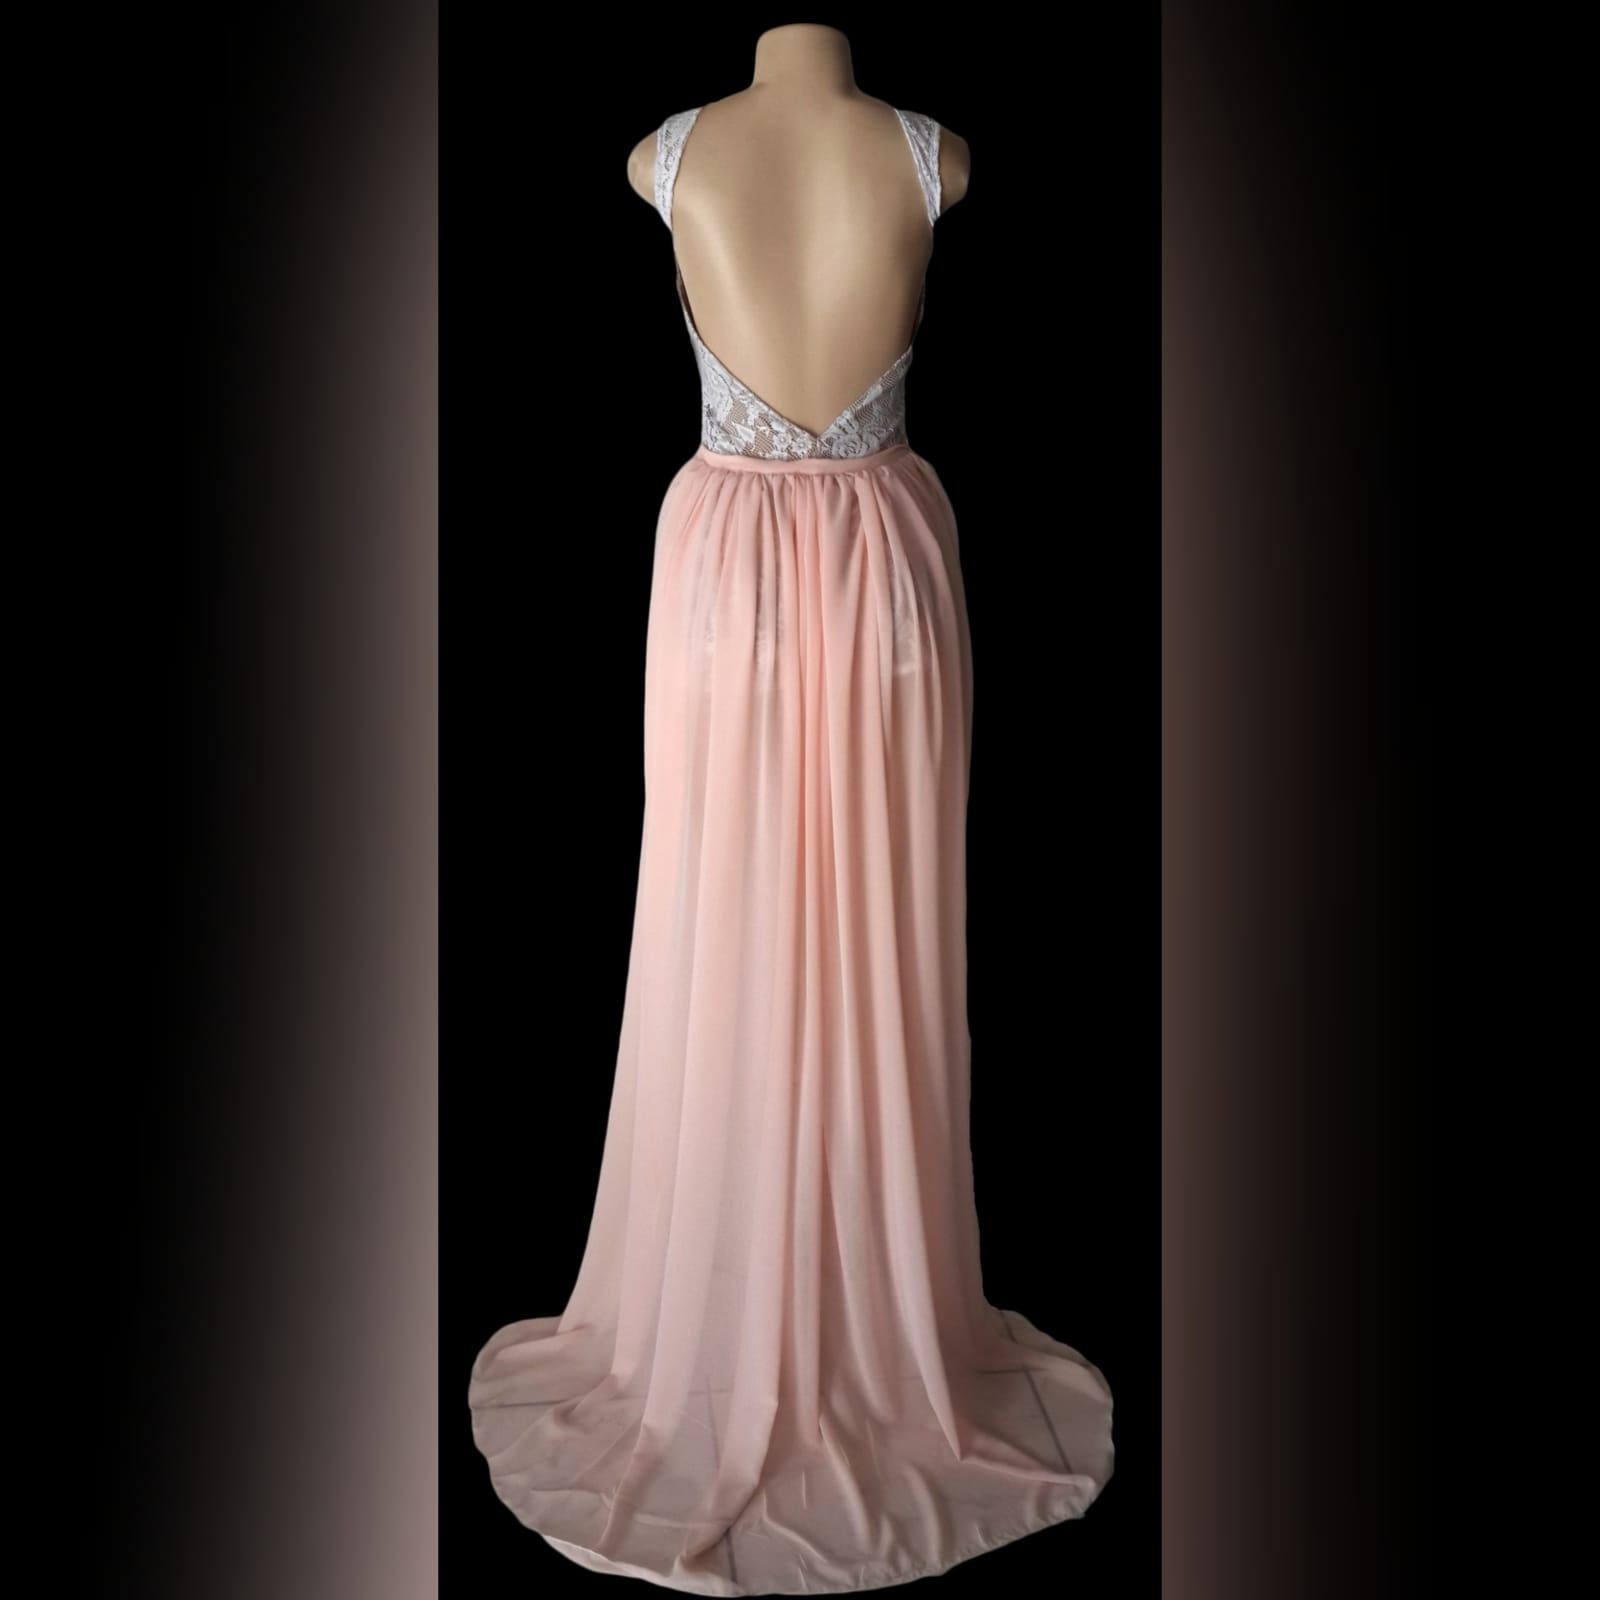 Peach and white 2 piece evening dress 4 peach and white 2 piece evening dress. Mini lace dress with a low open back, with a detachable back peach train